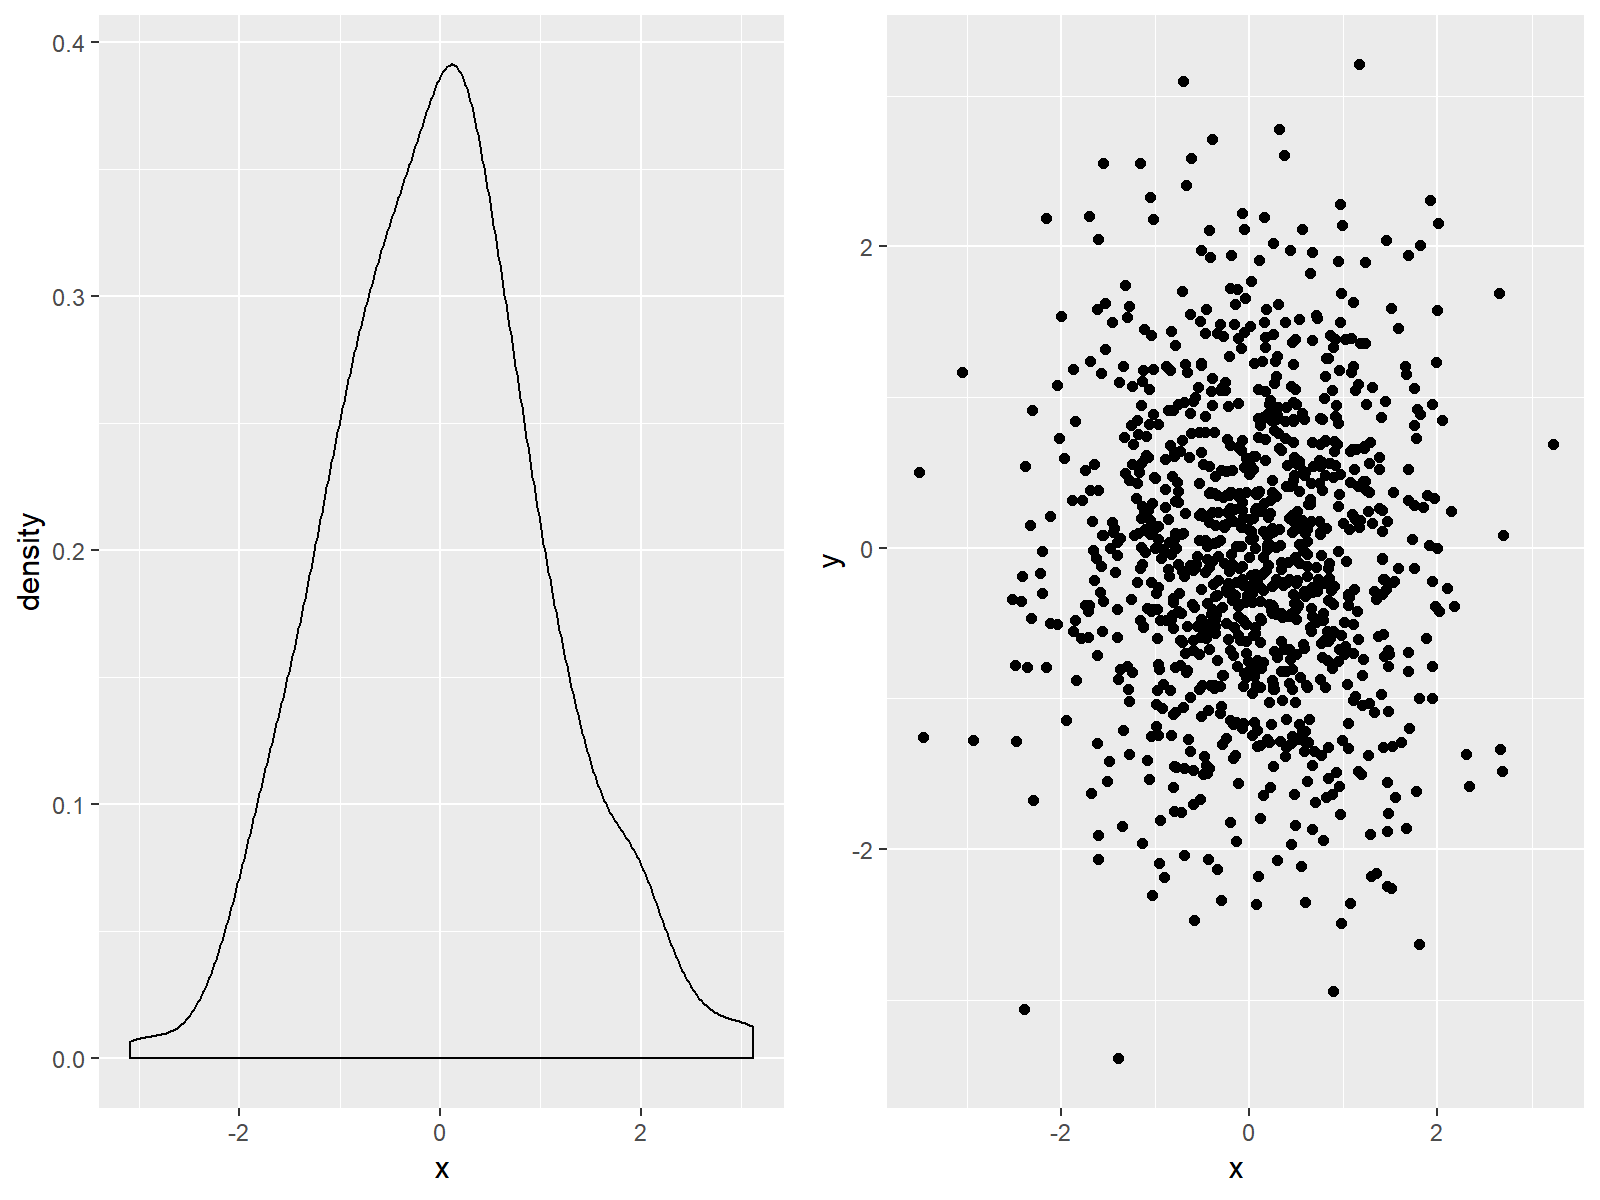 ggplots besides each other